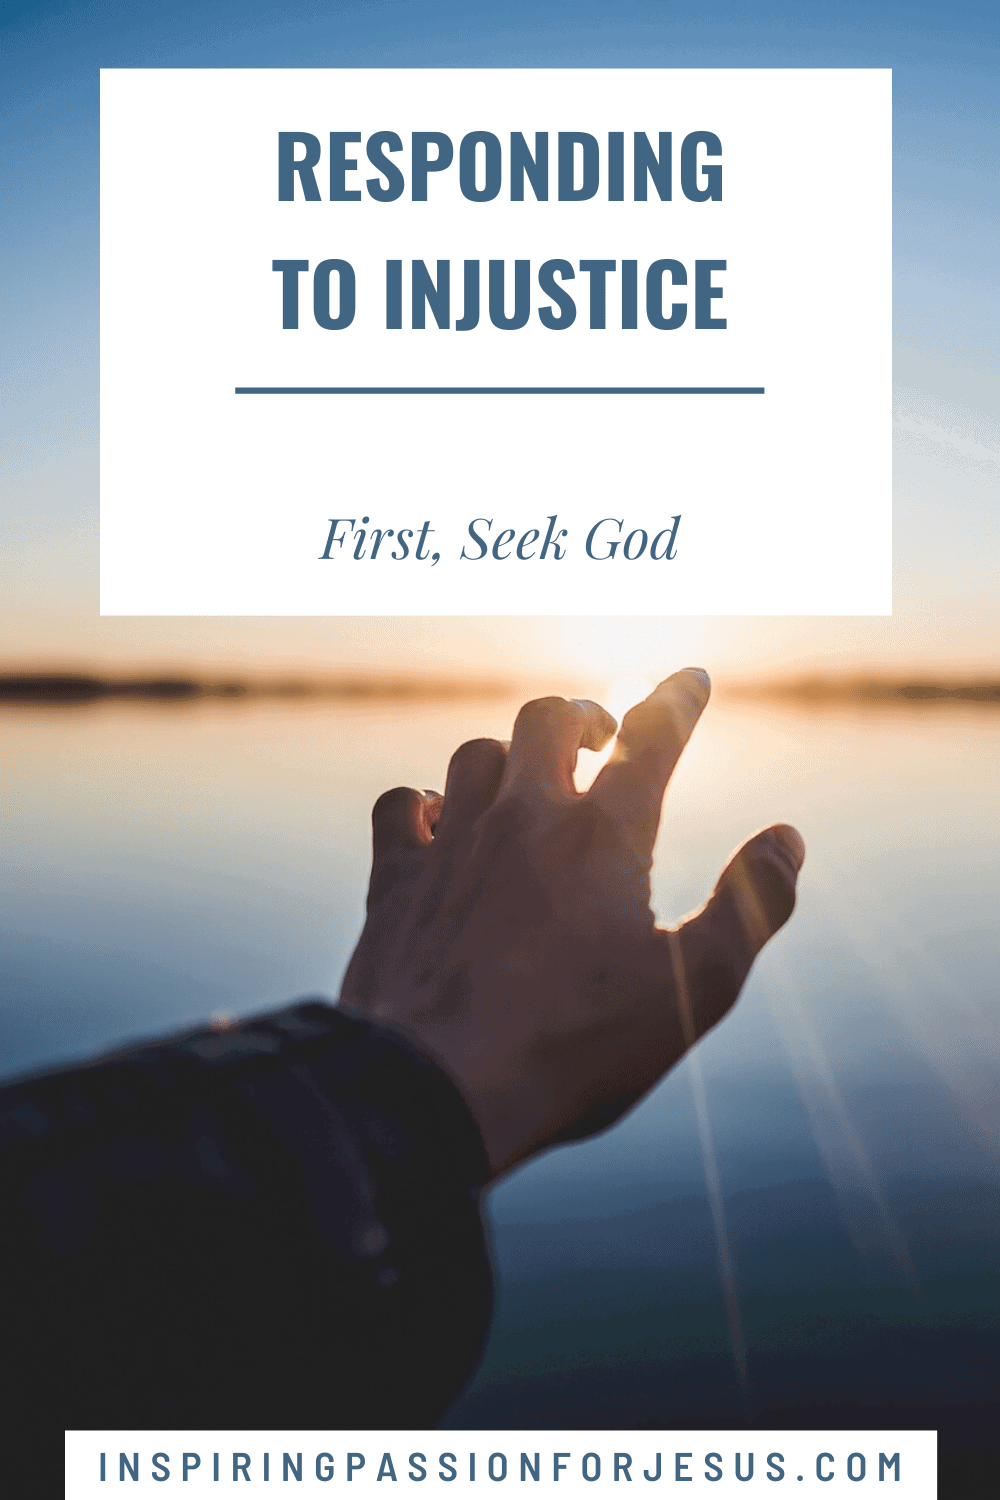 Responding to Injustice - First, Seek God